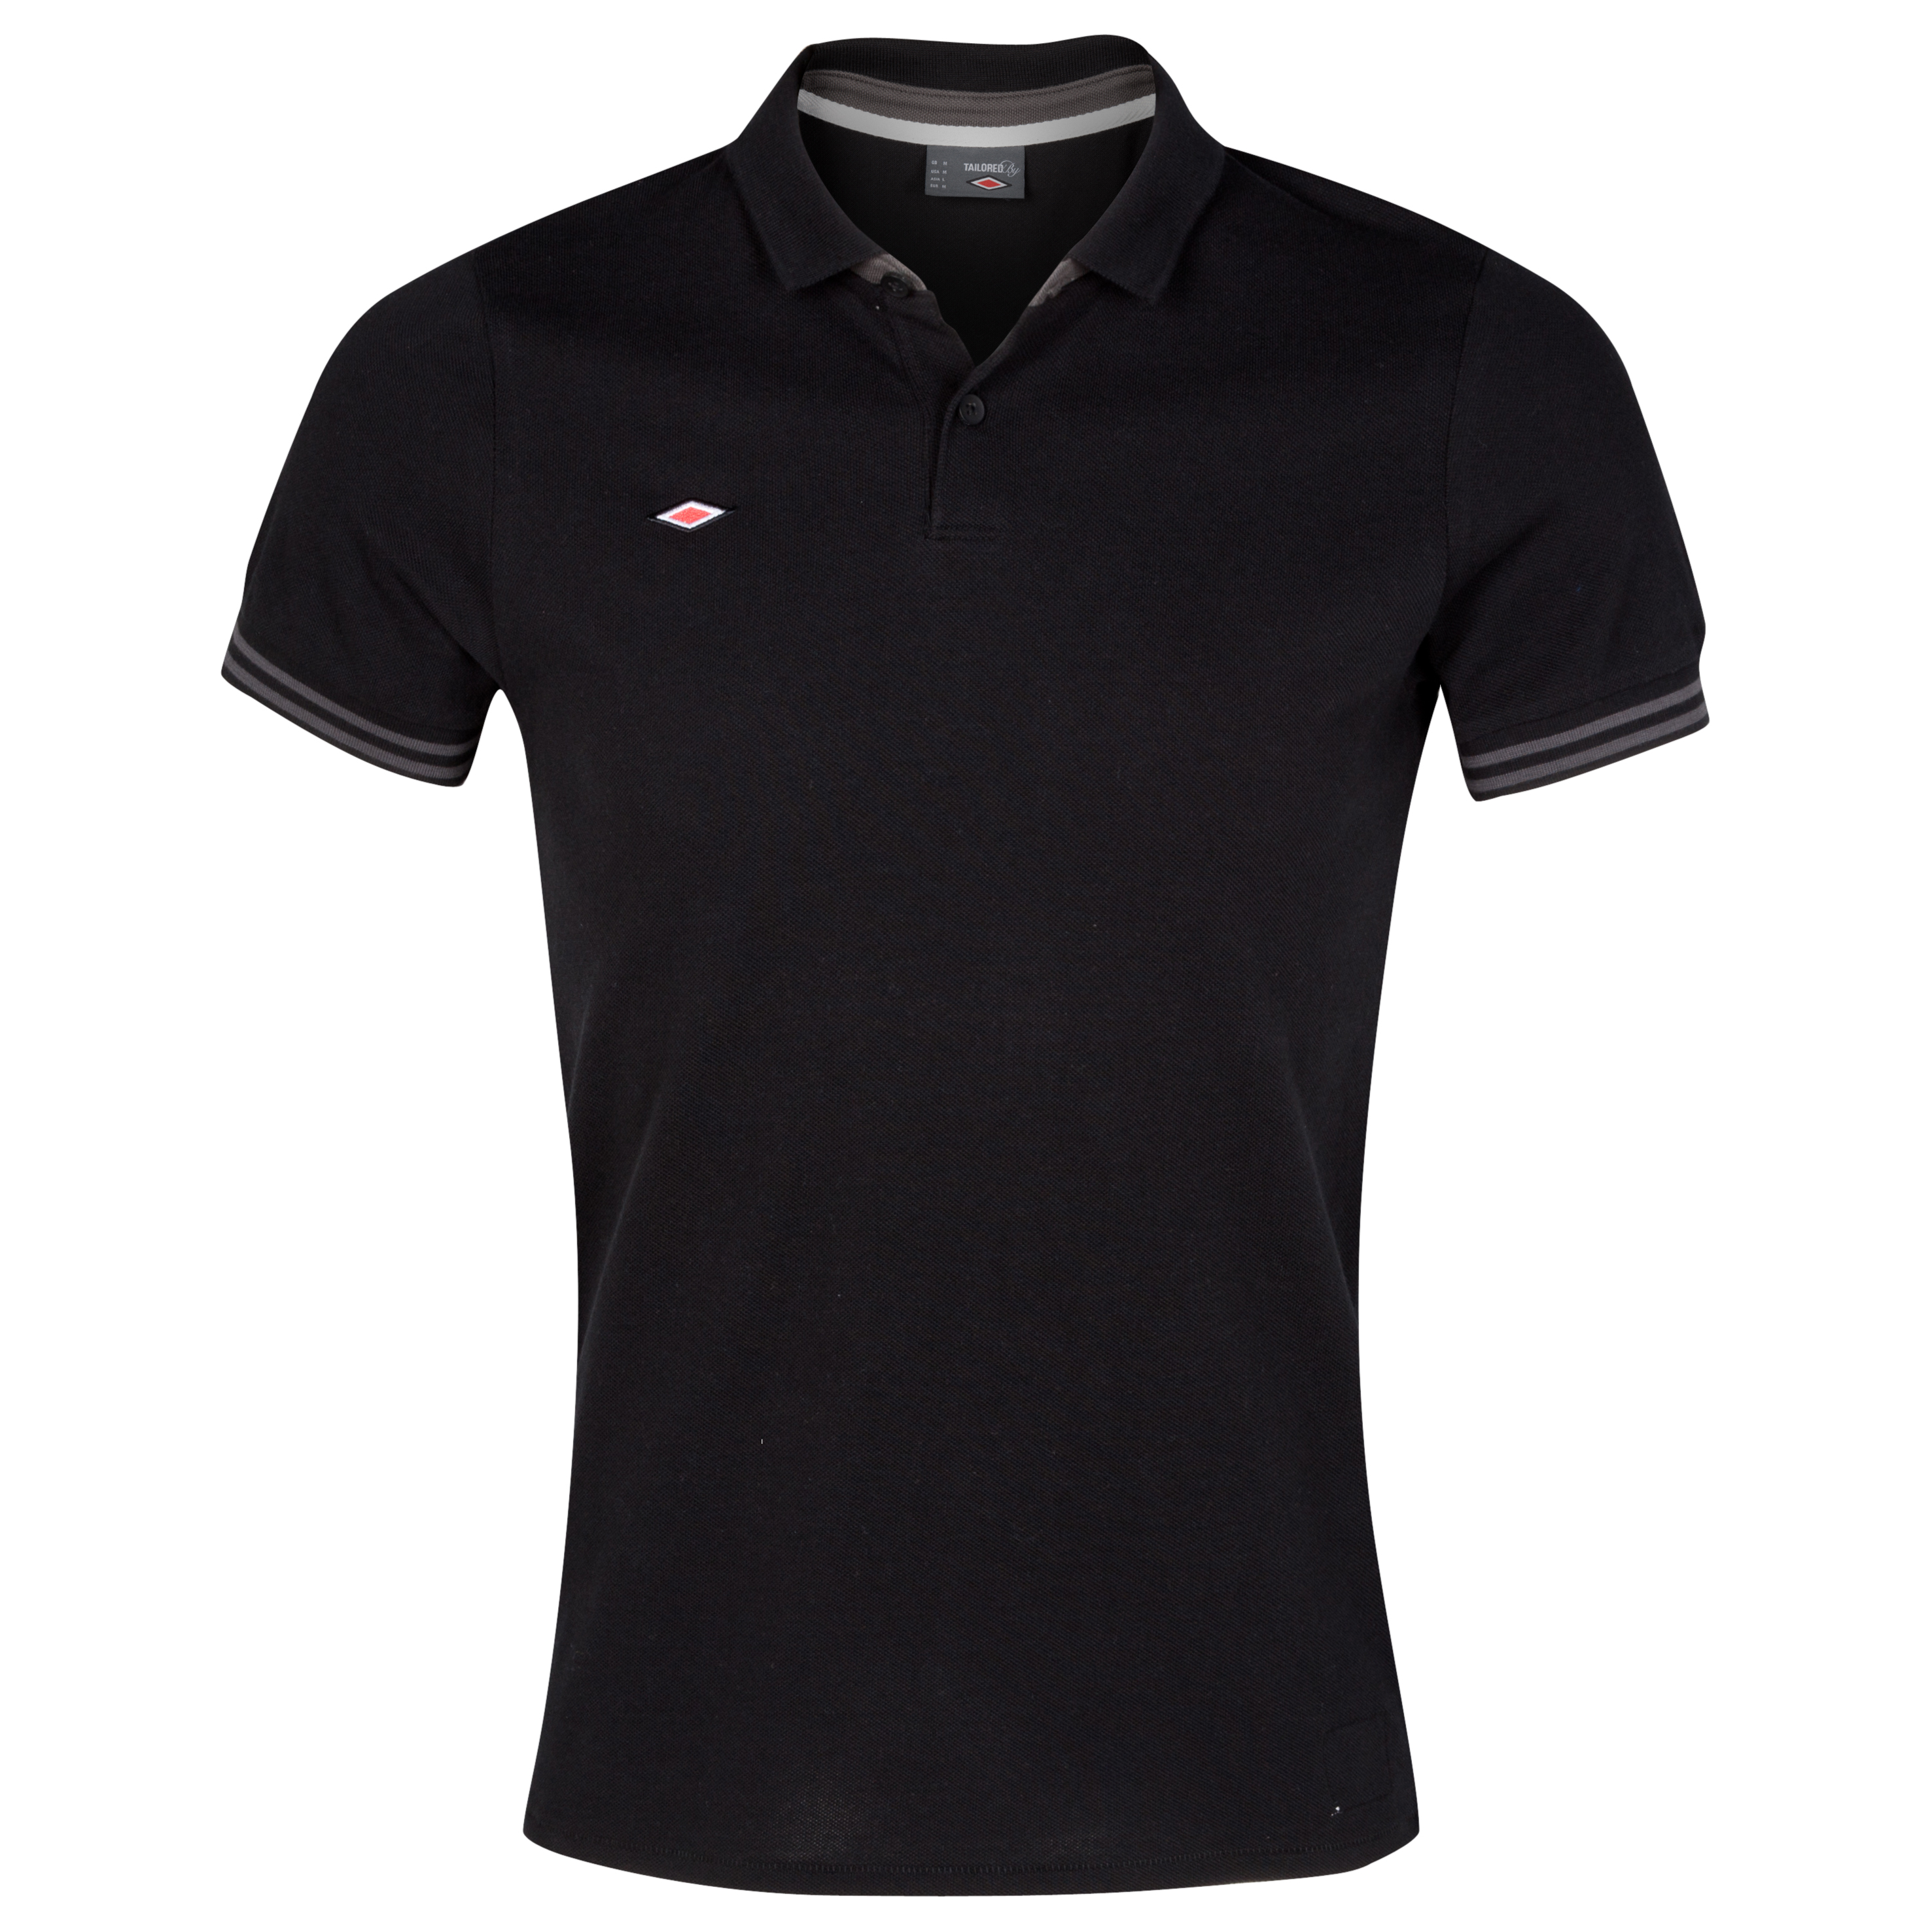 Umbro Pique Polo - Black/Dark Shadow